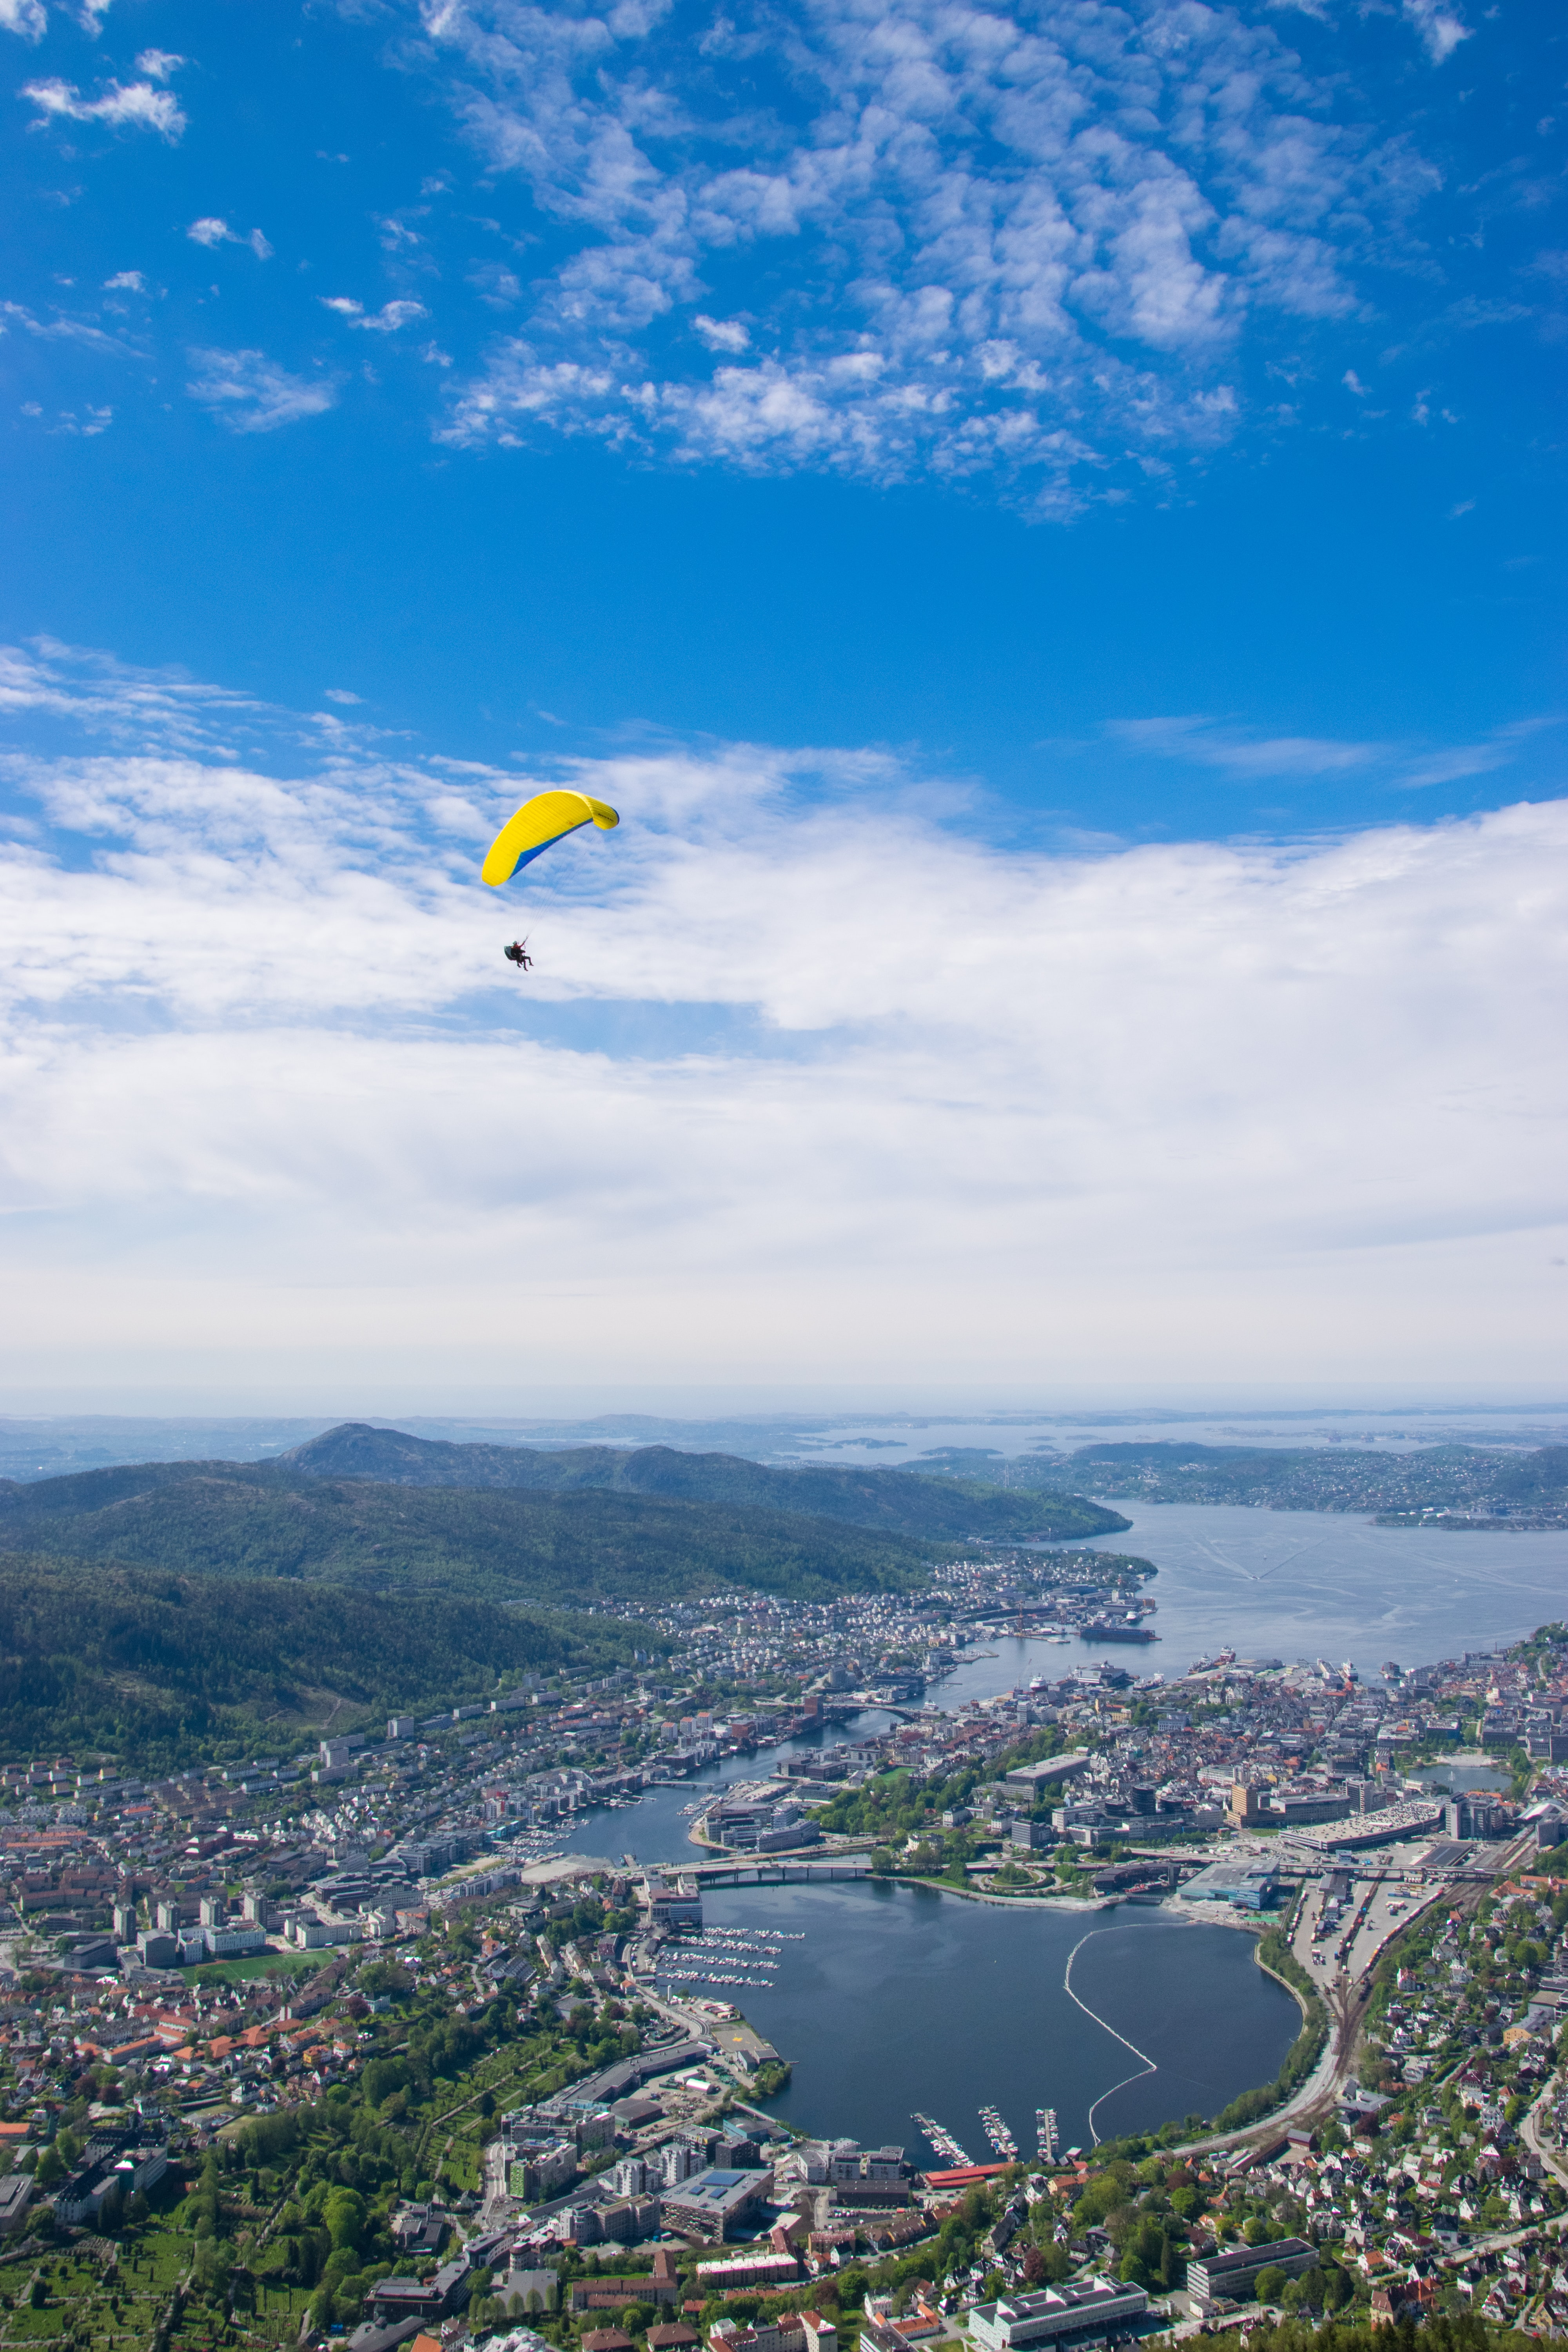 person paragliding over city